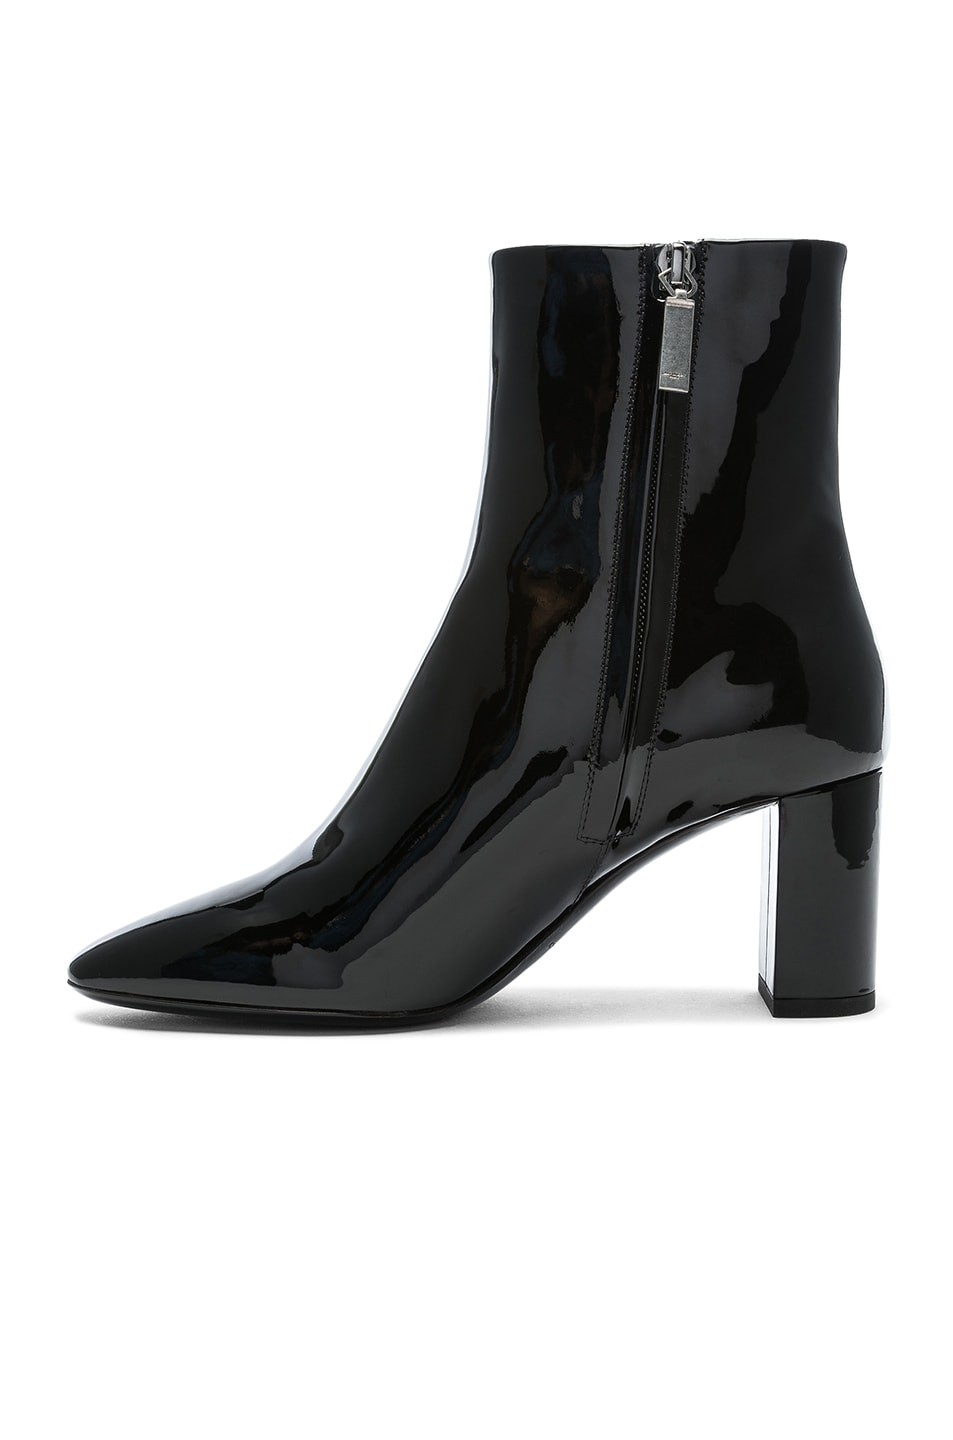 Image 5 of Saint Laurent Patent Leather Pin Lou Ankle Boots in Black